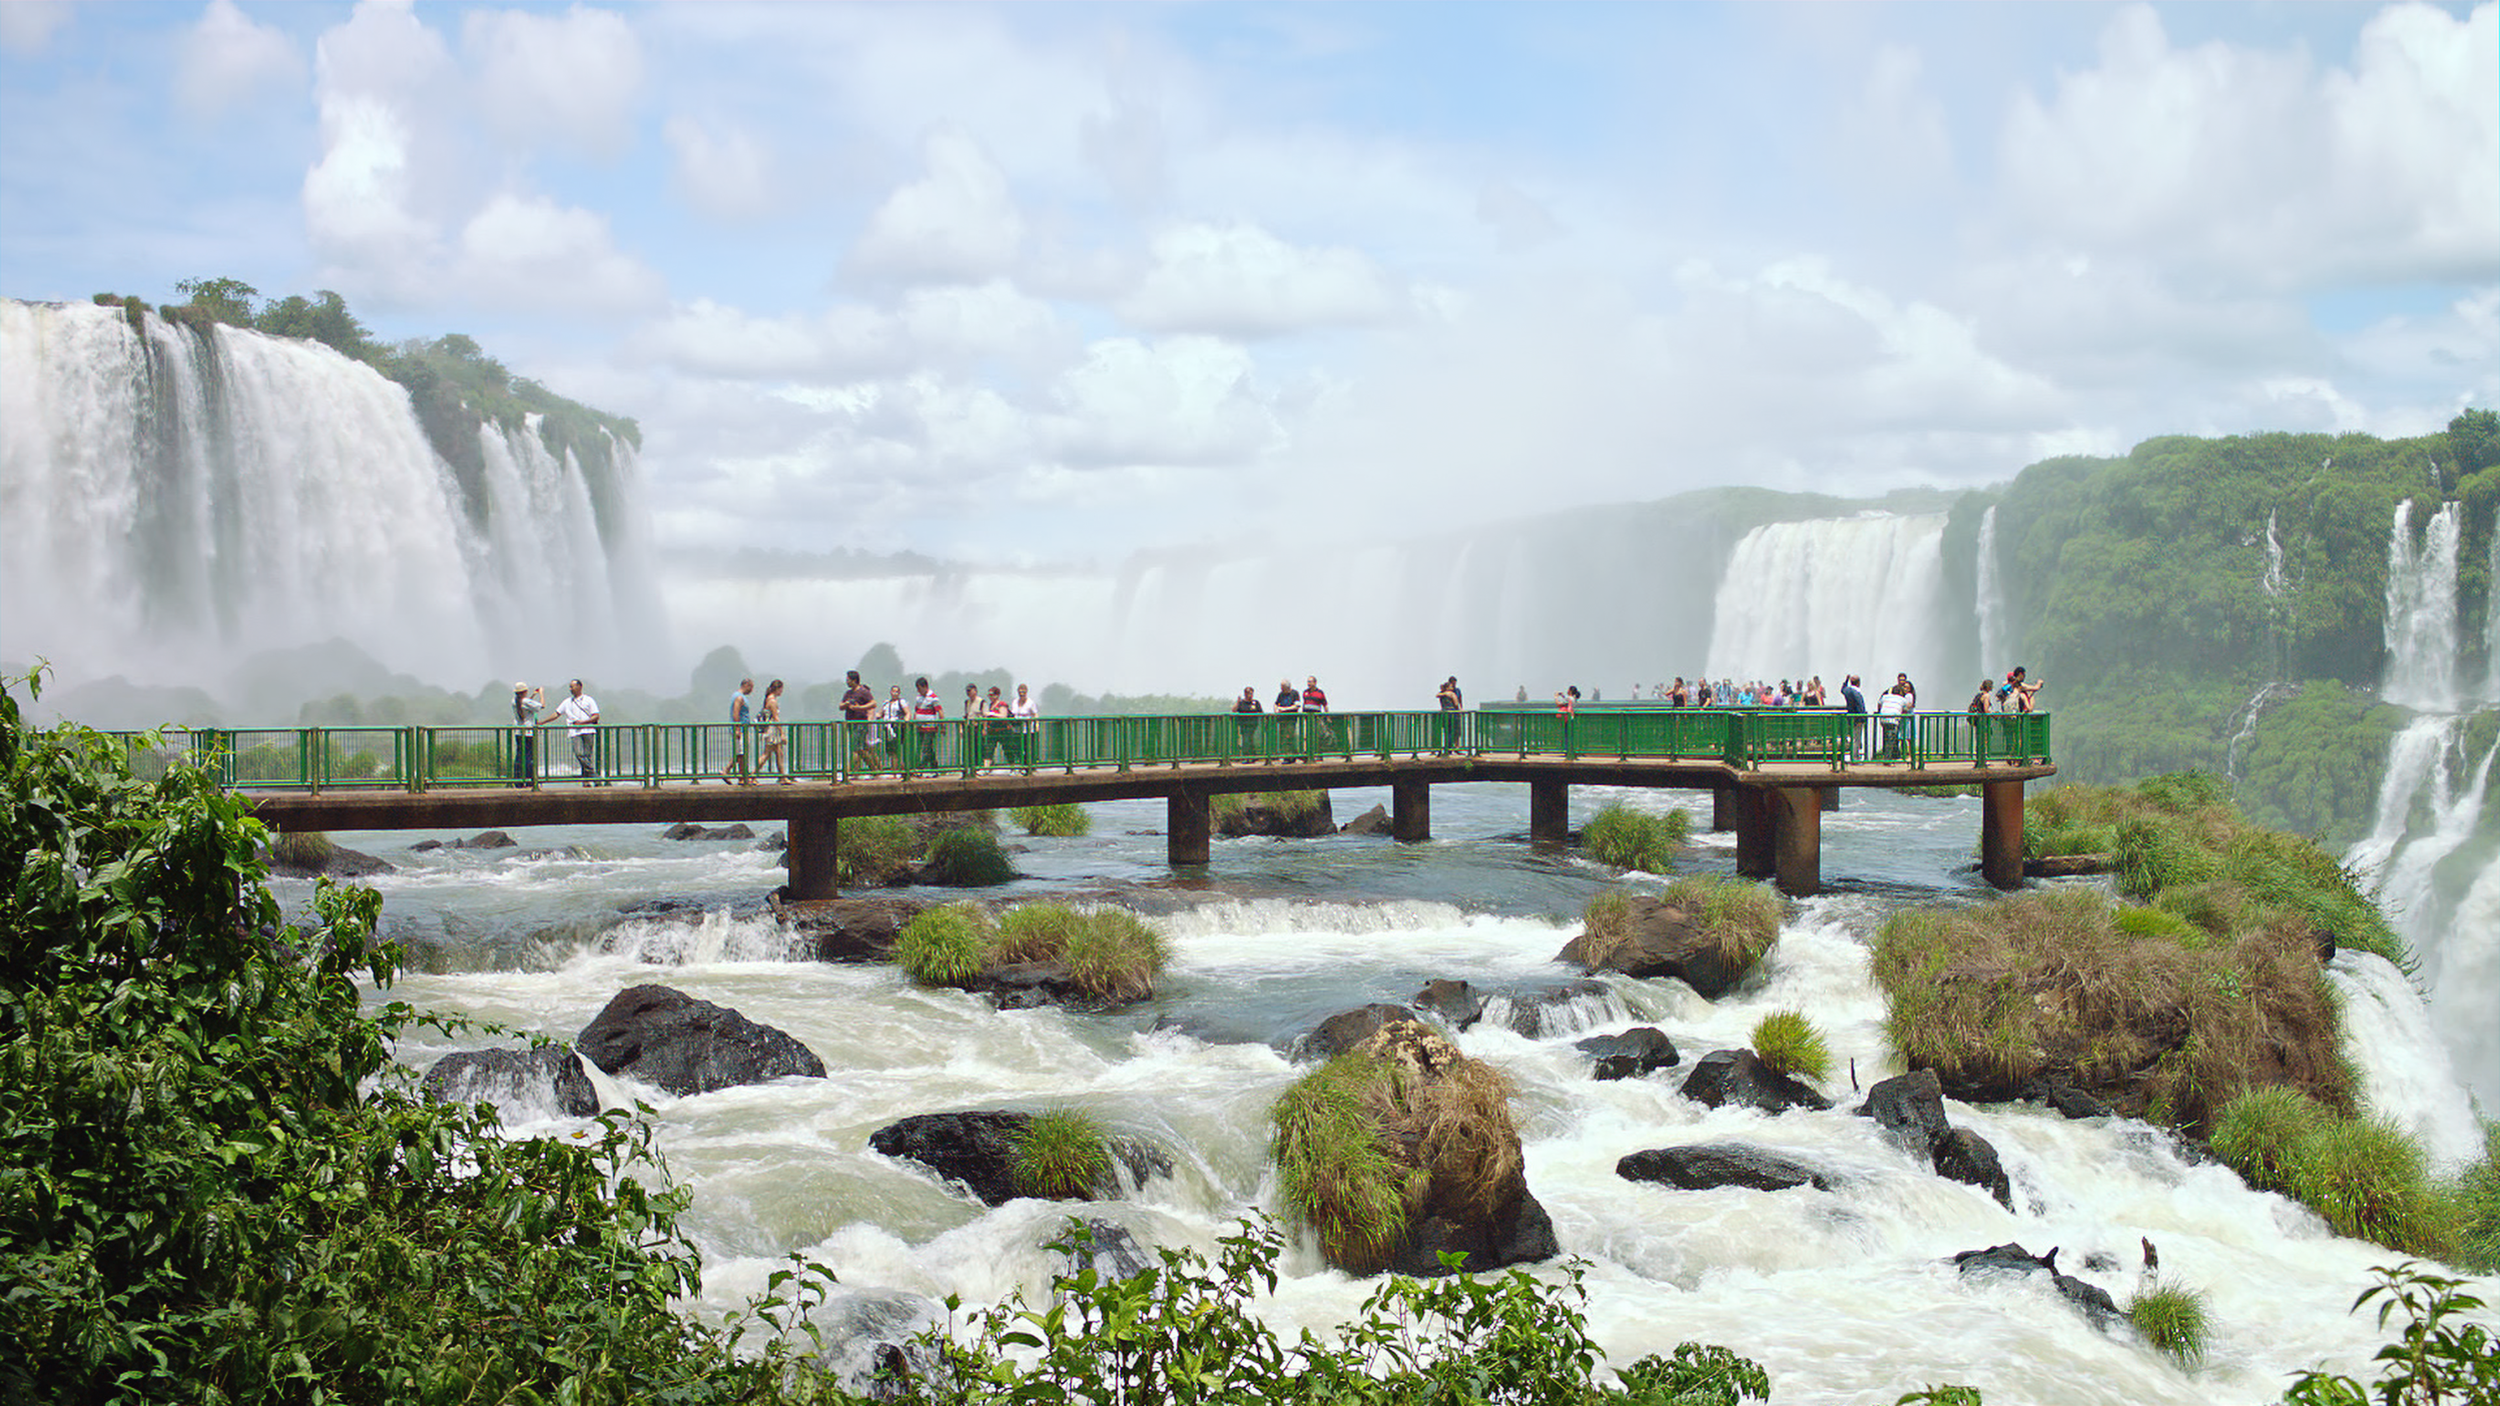 Platforms overlooking waterfalls in Iguazu Falls, Brazil.